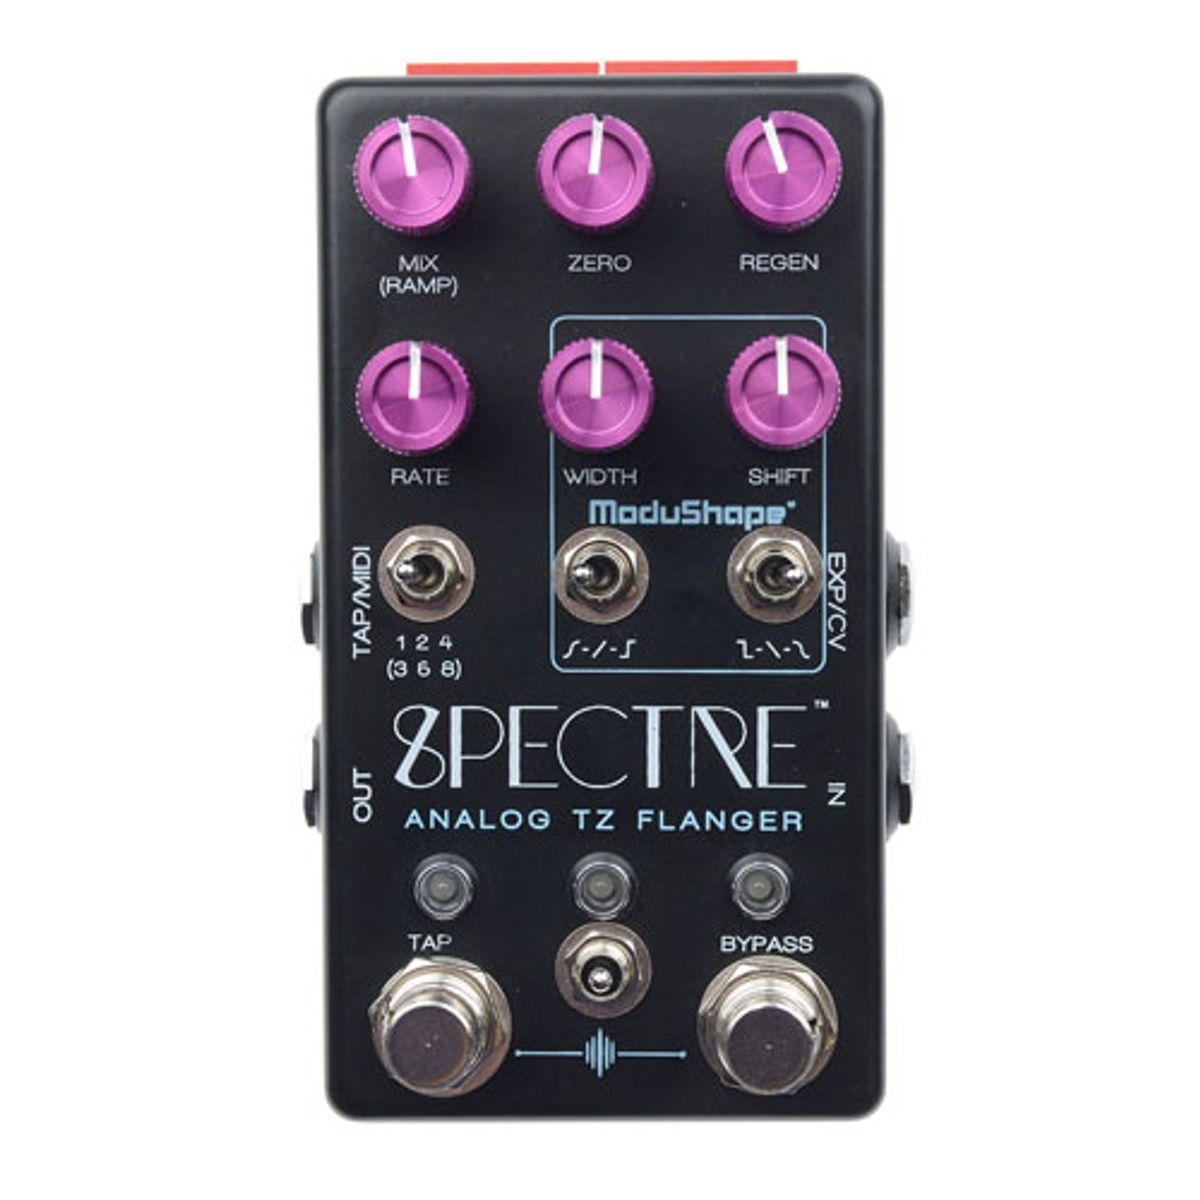 Chase Bliss Audio Introduces the Spectre Analog Through-Zero Flanger